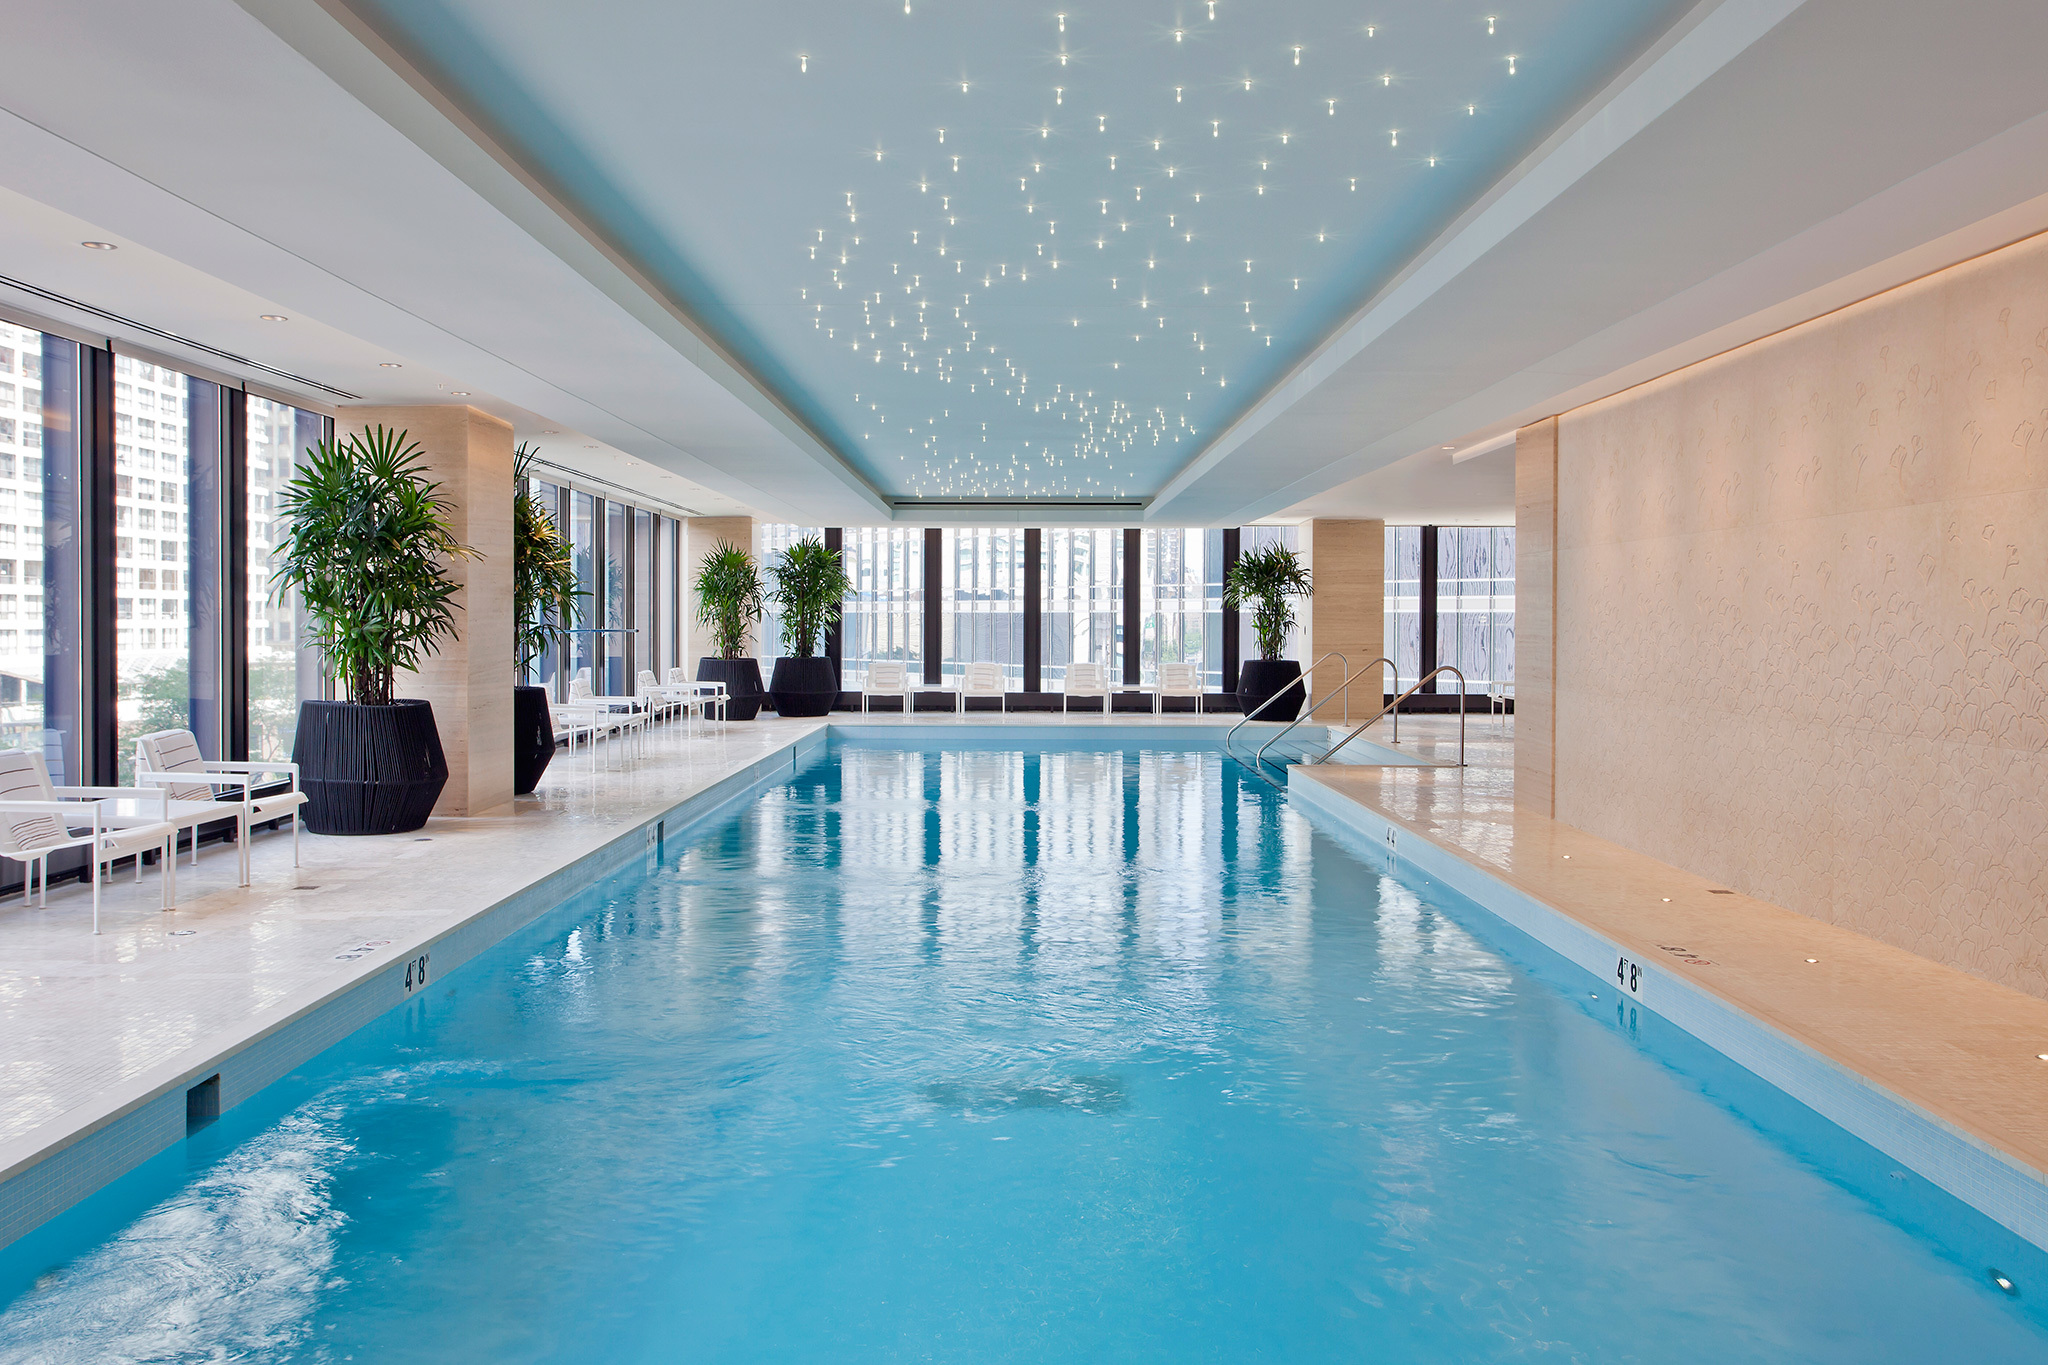 Spa treatments at the 10 best spas in chicago for Chicago area spa resorts